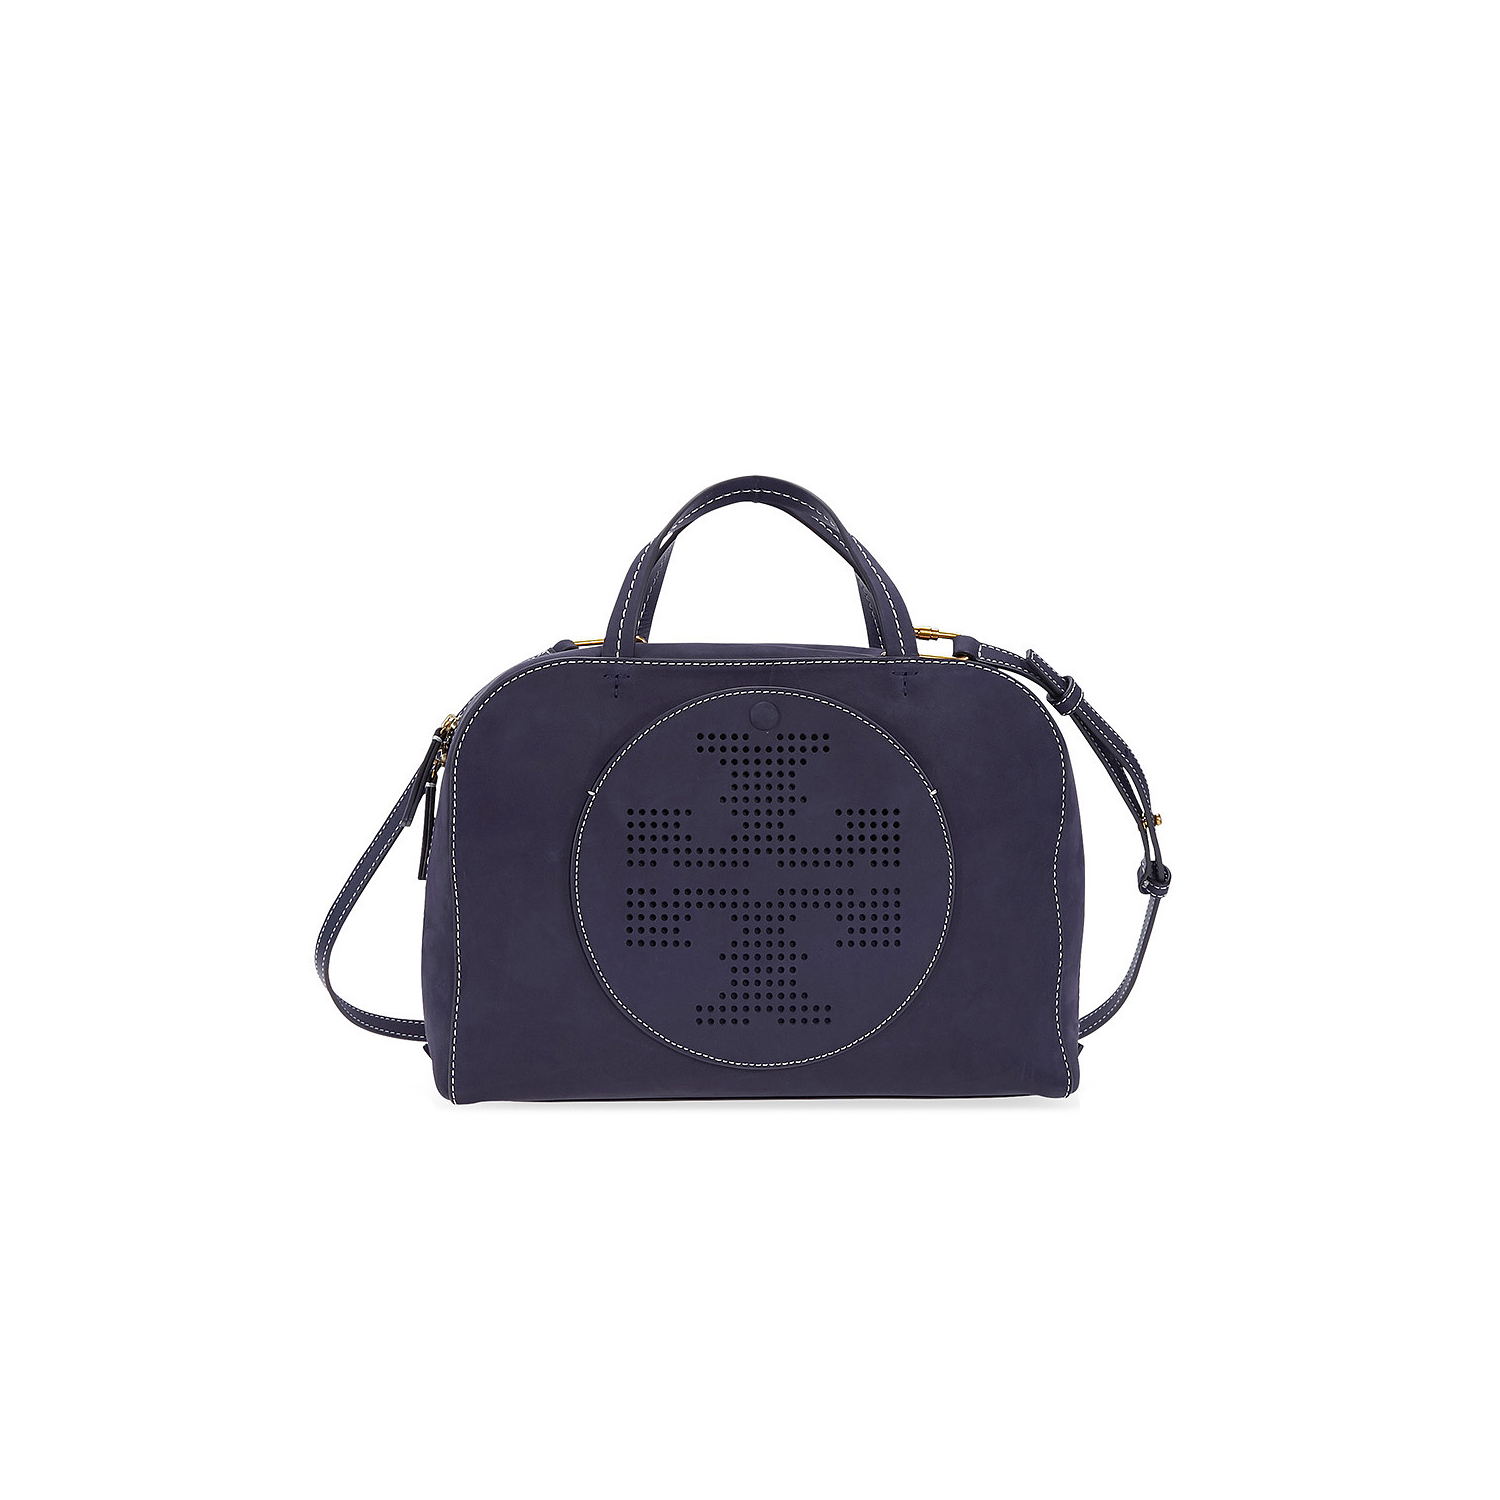 abde16f26db Tory Burch Perforated-Logo Suede Satchel- Tory Navy   Satchel Bags - Best  Buy Canada